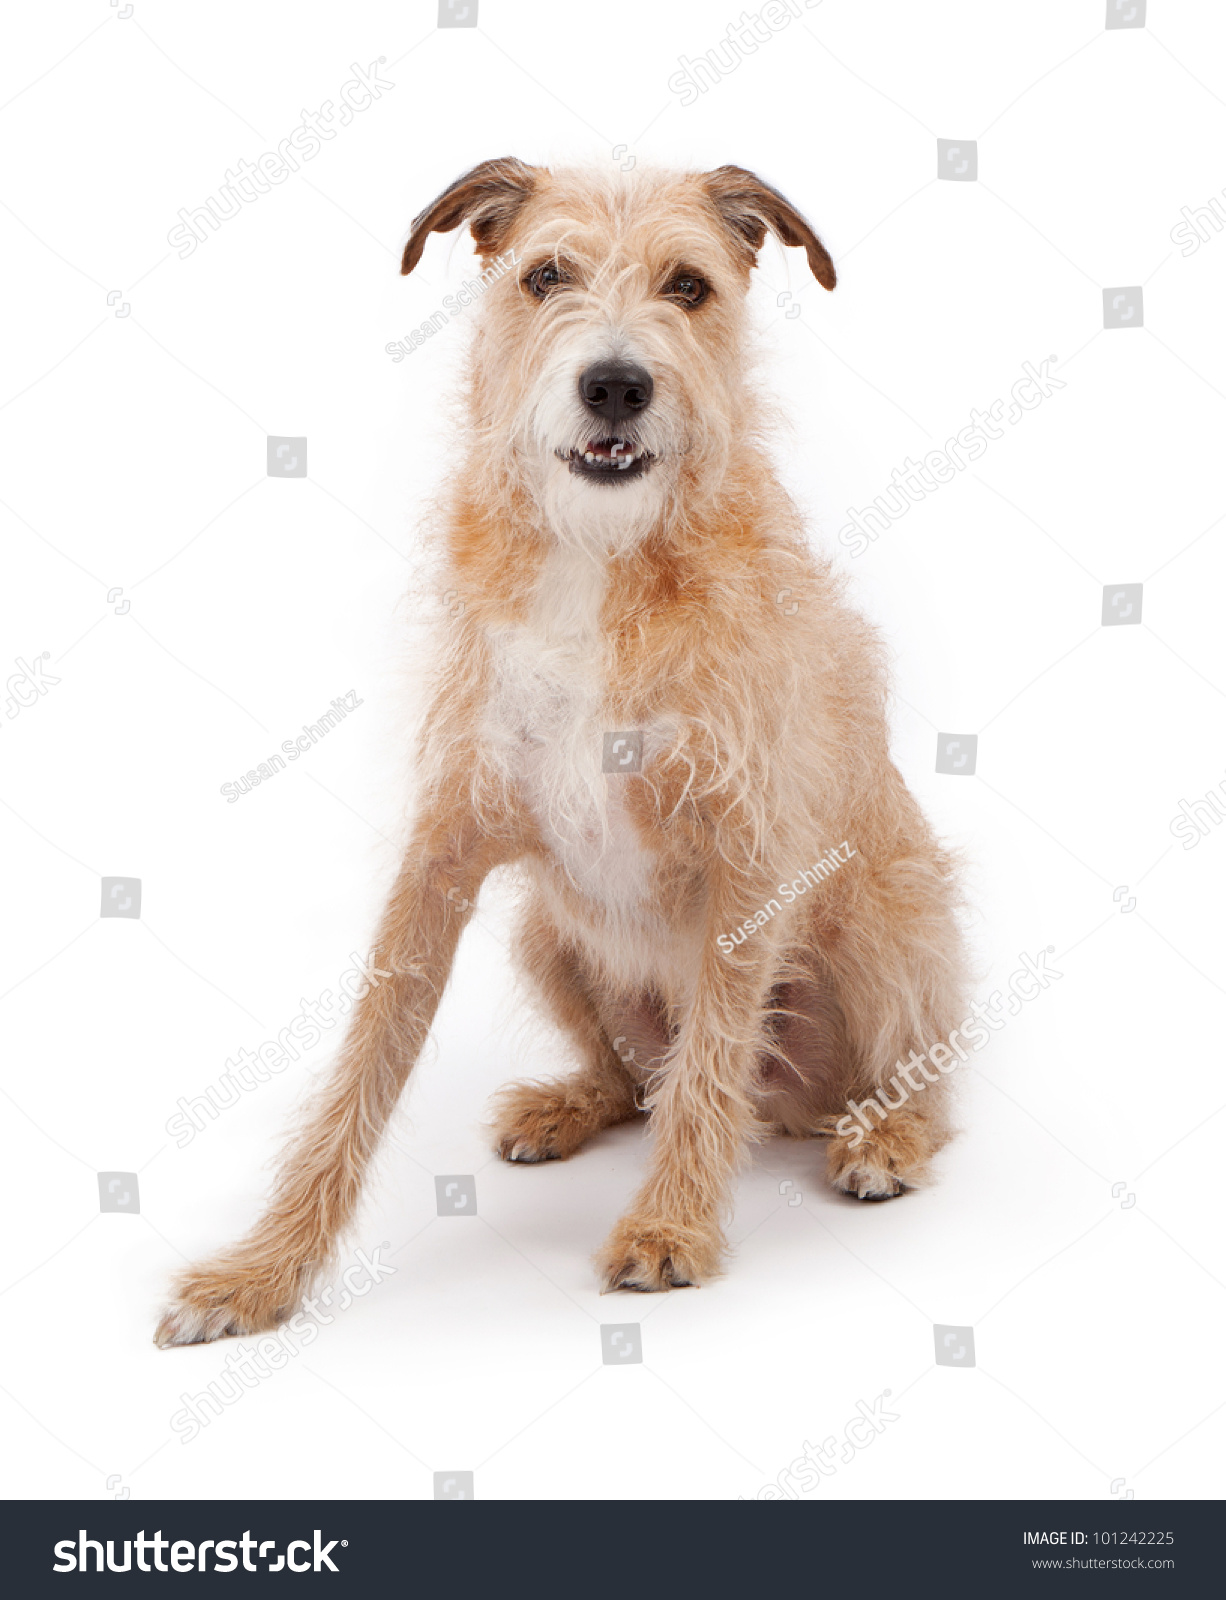 Large Mixed Breed Wire Hair Dog Stock Photo 101242225 ...